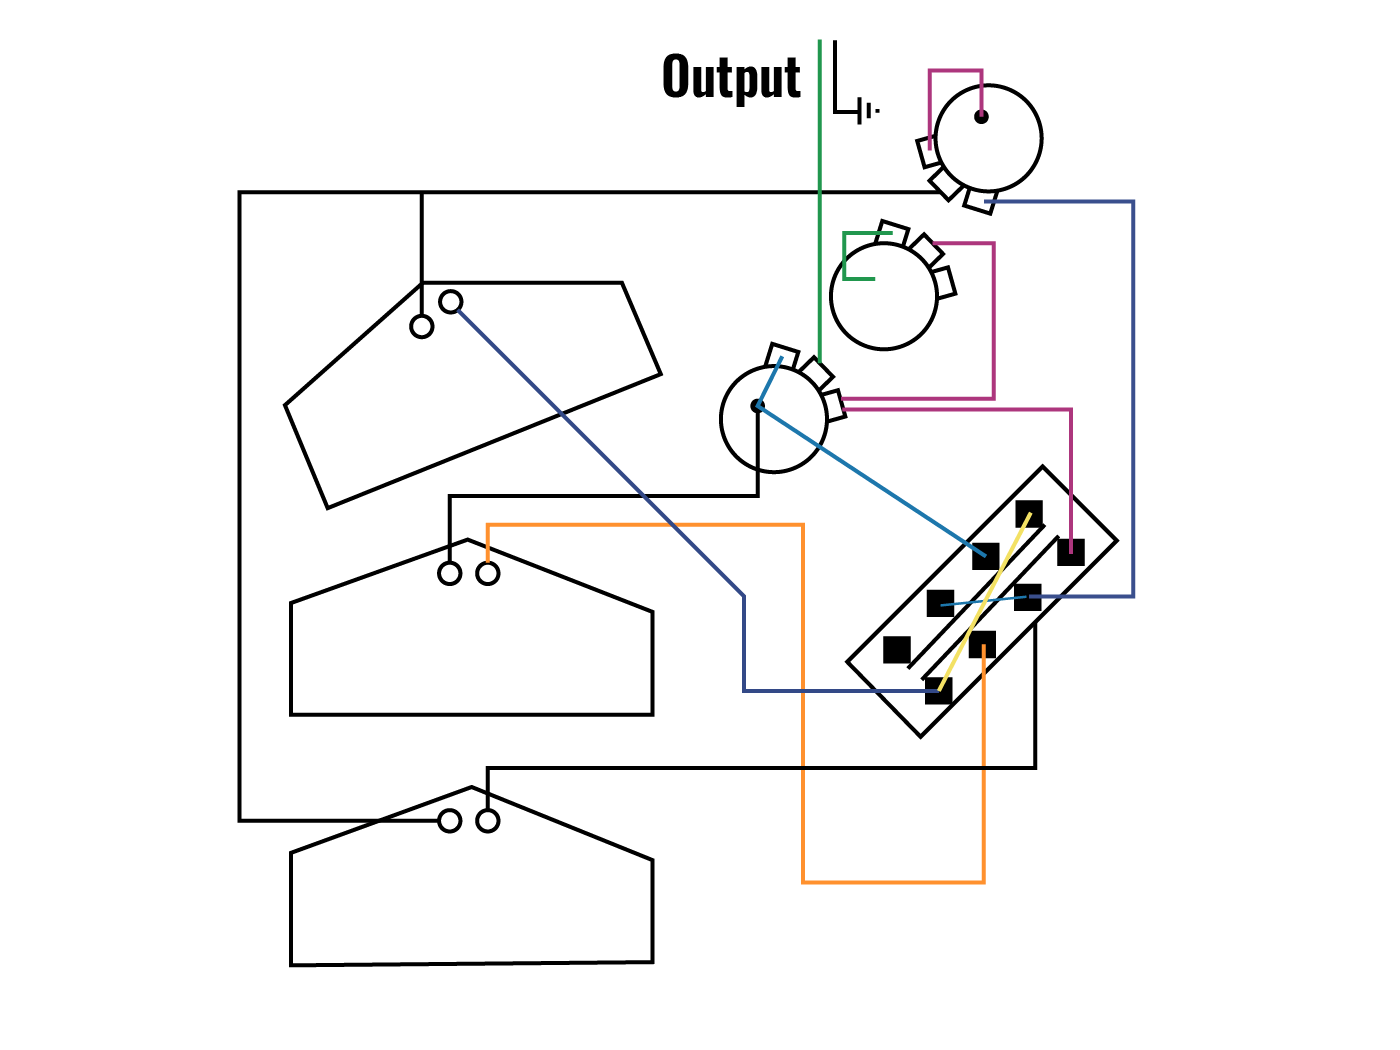 hight resolution of stratocaster dan armstrong mod wiring circuitry diagram